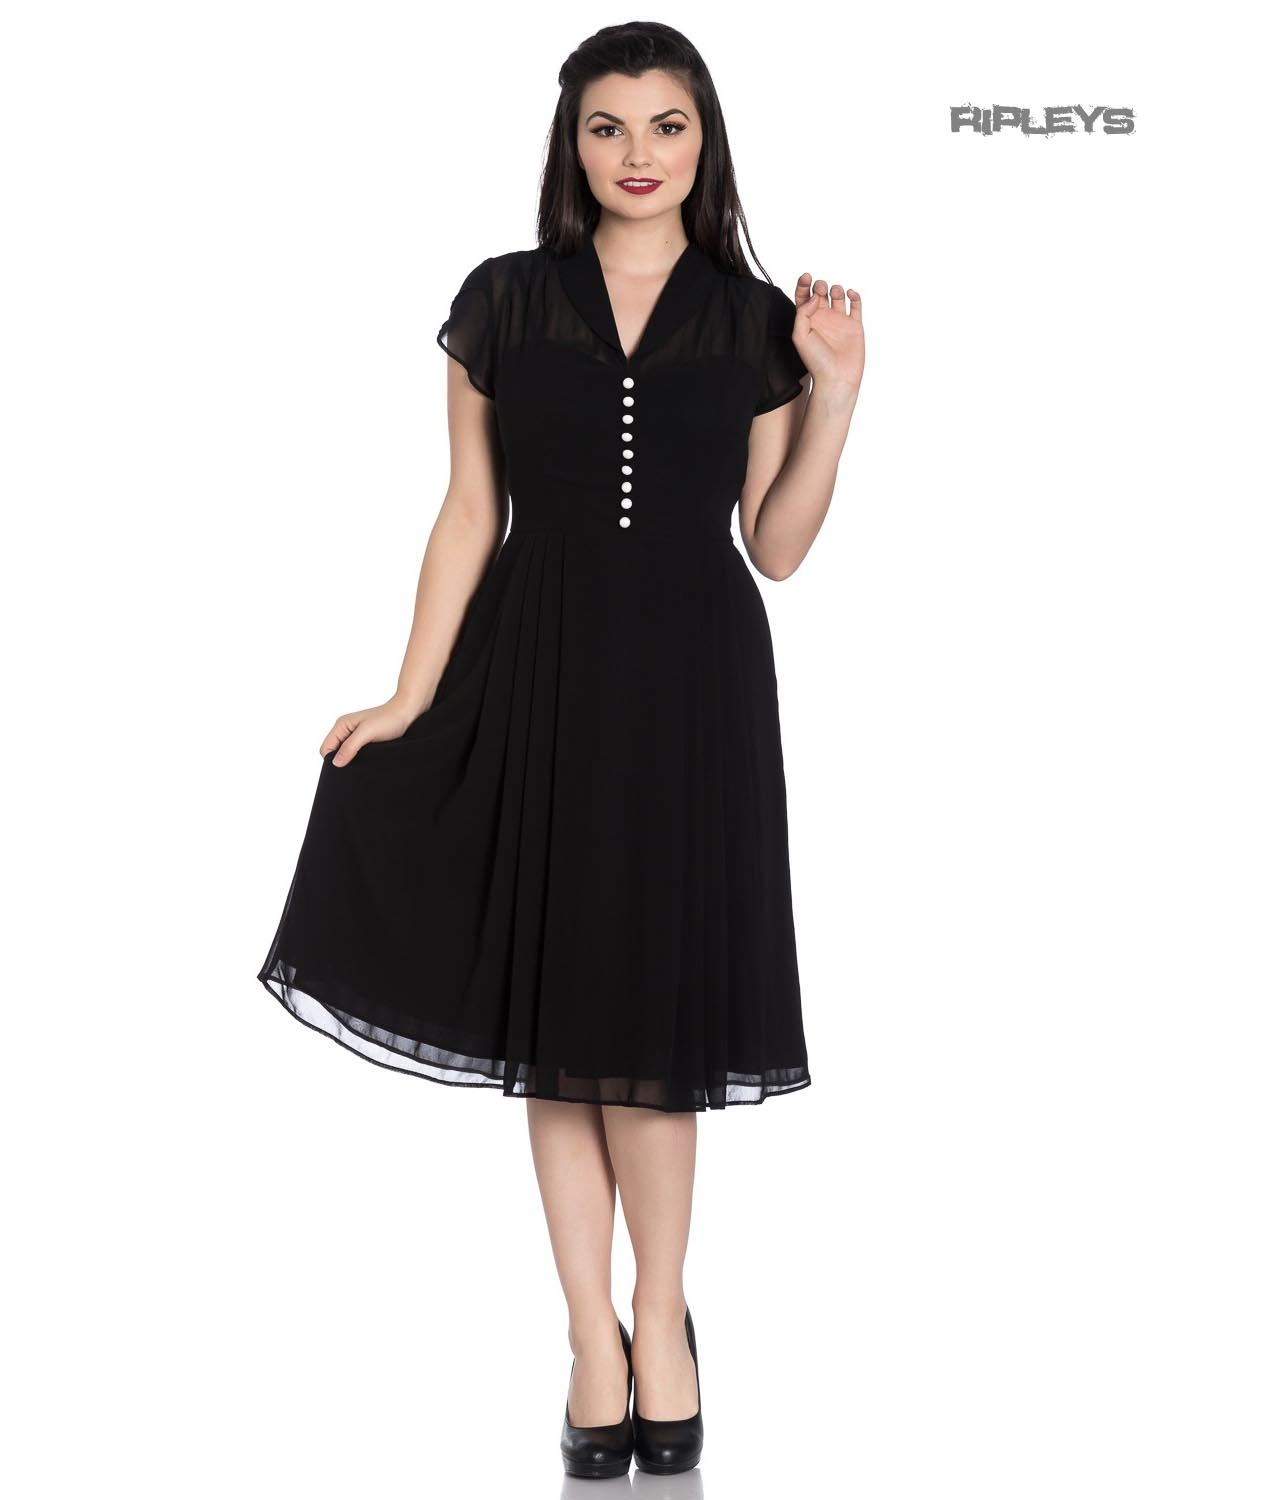 Hell-Bunny-40s-50s-Elegant-Pin-Up-Dress-PAIGE-Black-Chiffon-All-Sizes thumbnail 6